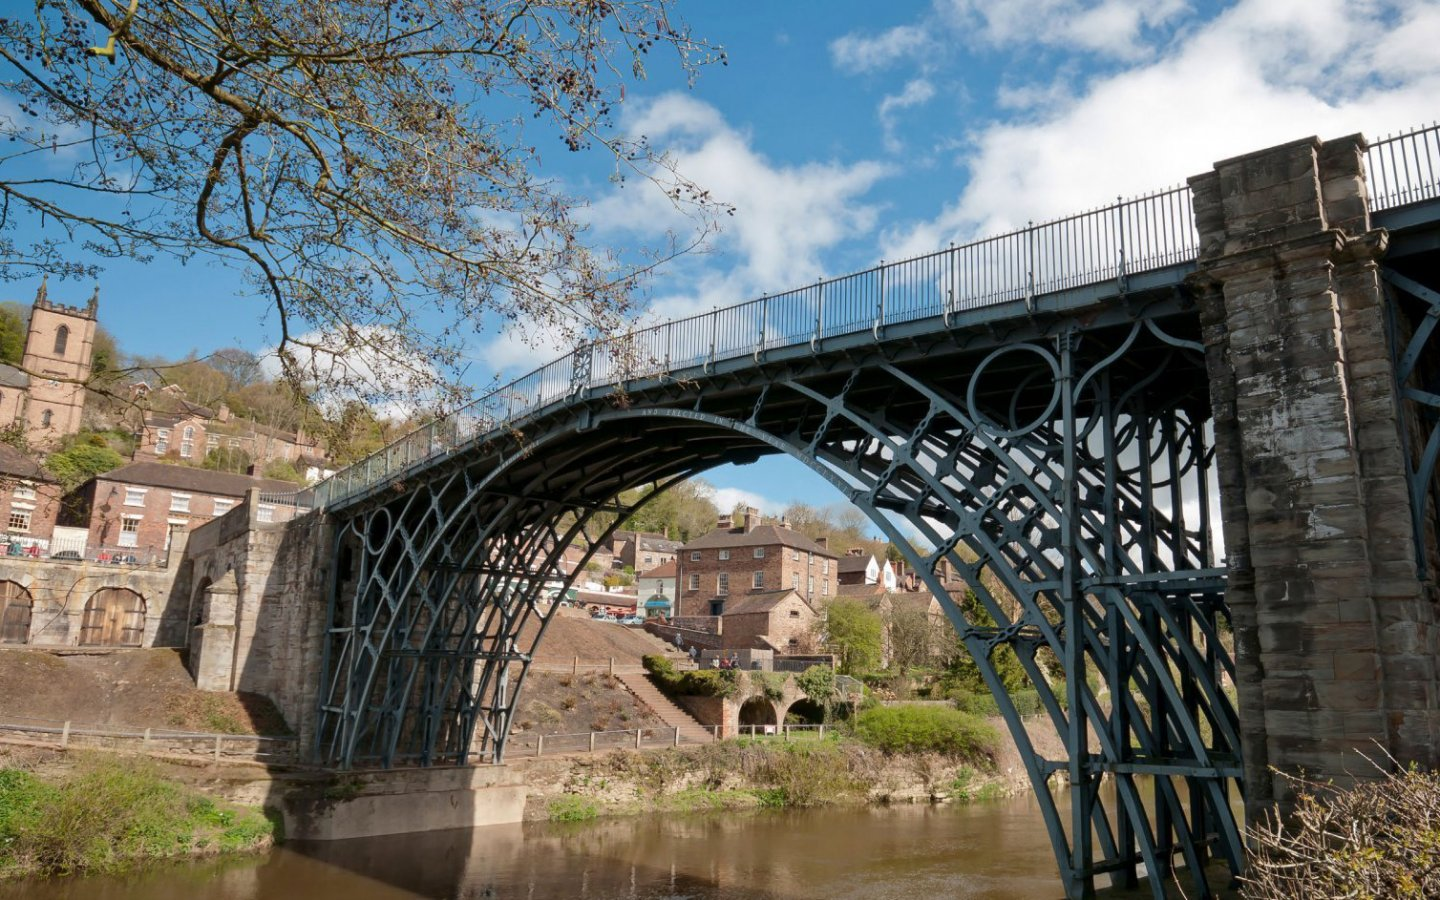 Figure 1 The Iron Bridge, Shropshire, England, 1779. (Photo credit: Flickr by Bs0u10e0)